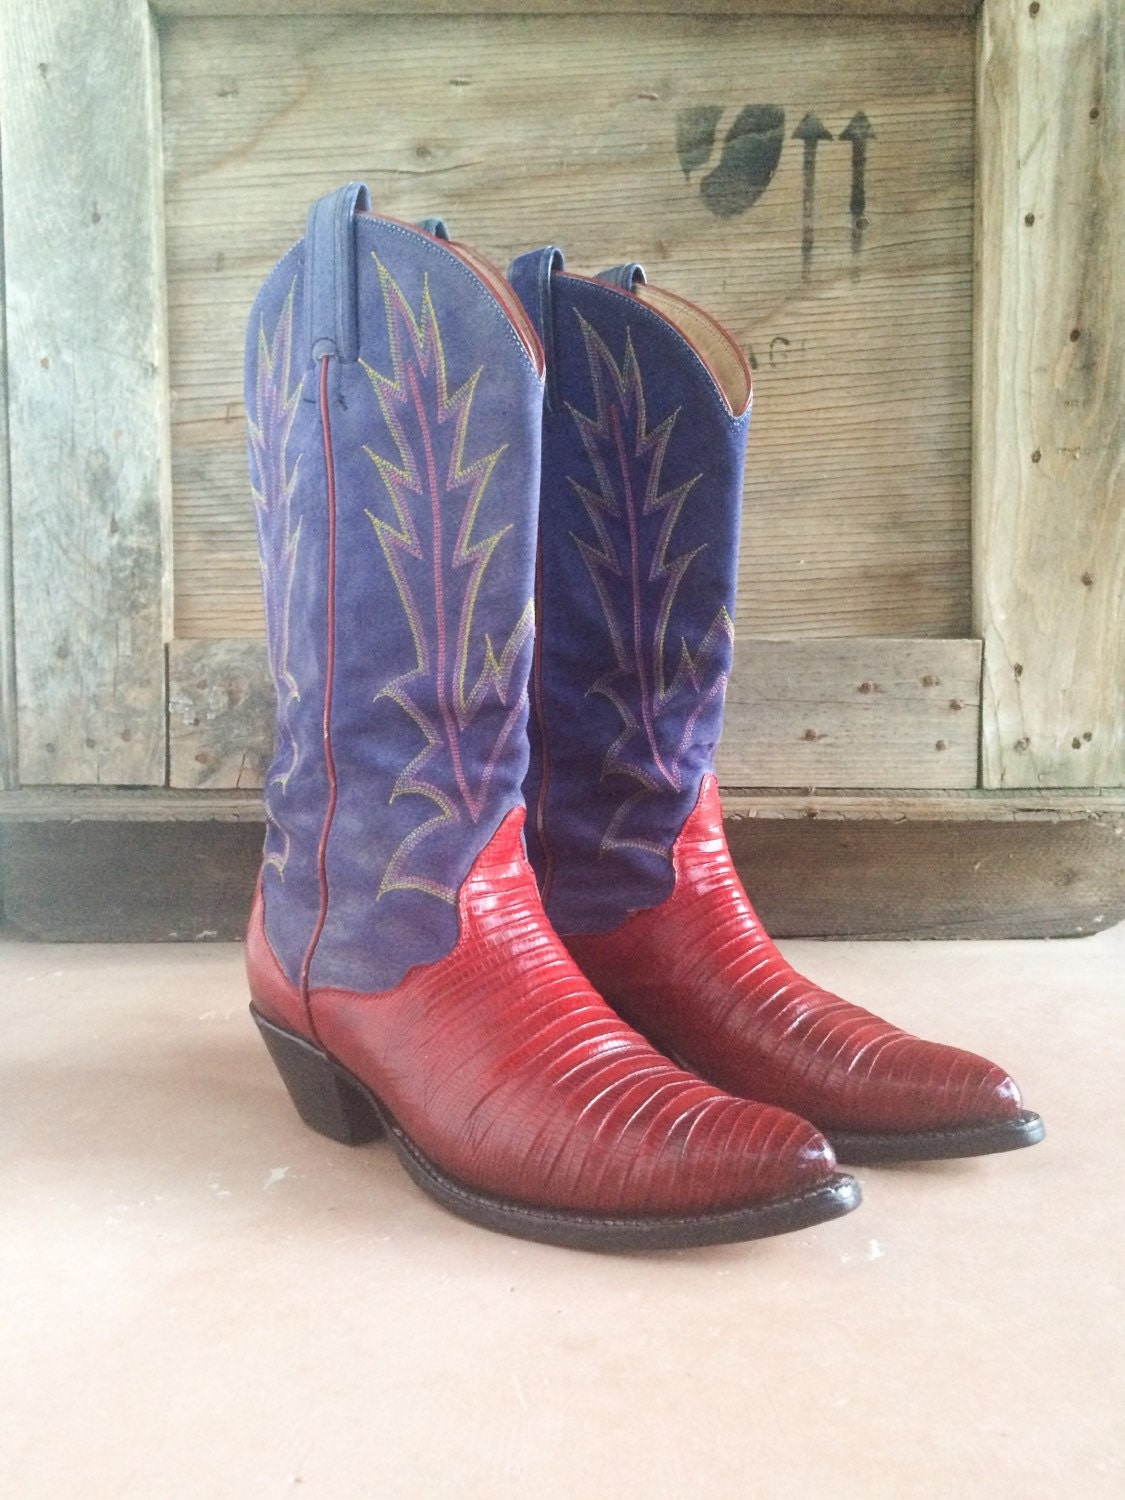 726fc2f48f7 Vintage Women's Cowboy Boots Lizard Skin Red Cowgirl Boots with ...